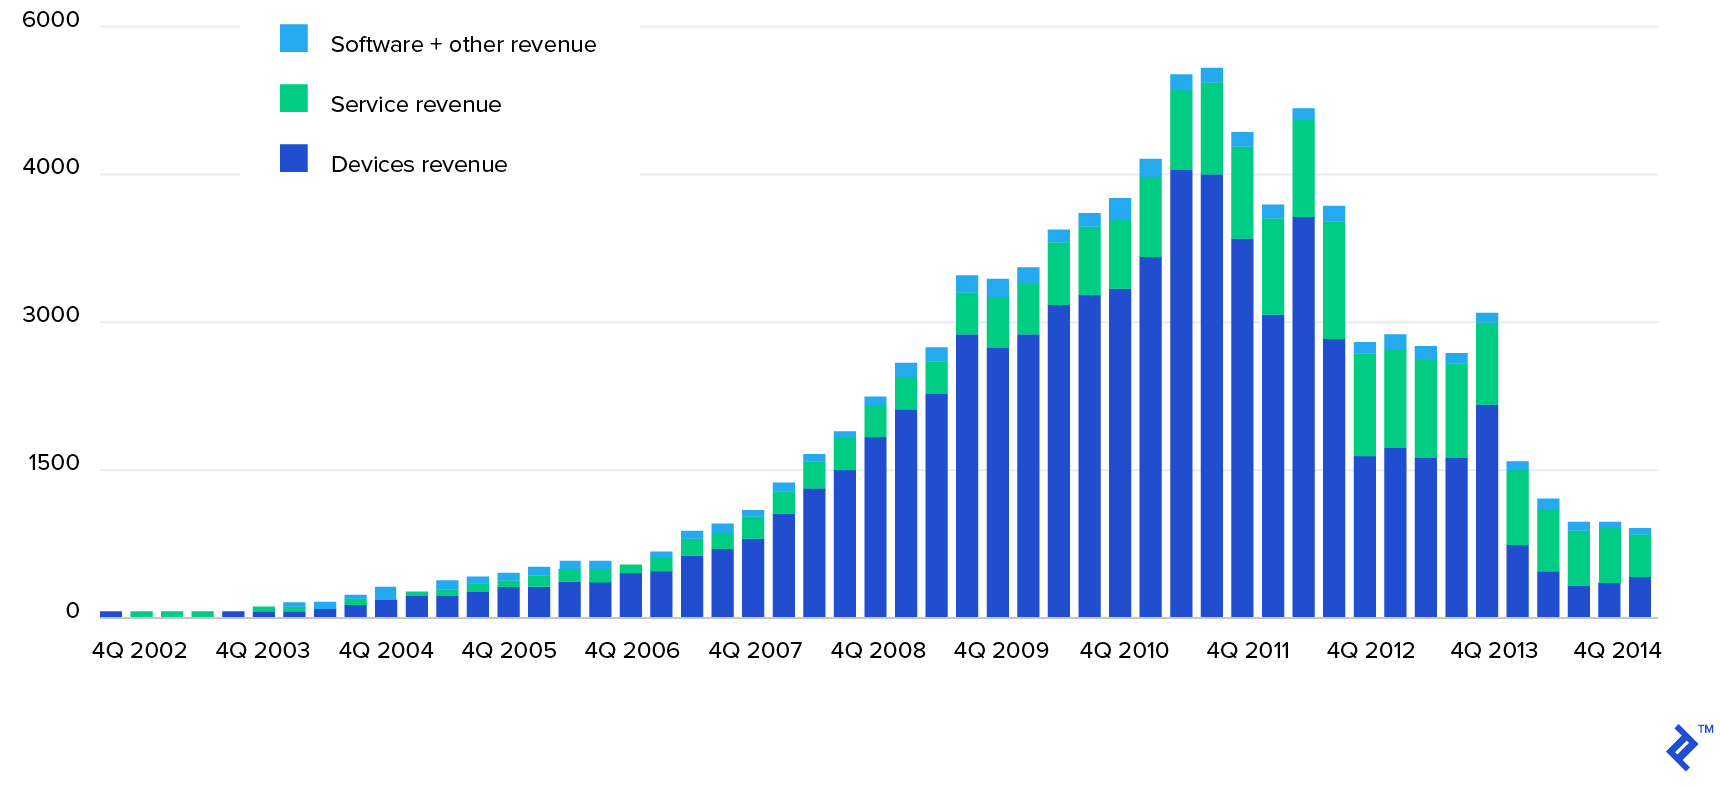 BlackBerry Revenues by Quarter and Source Up to 2015, $Million